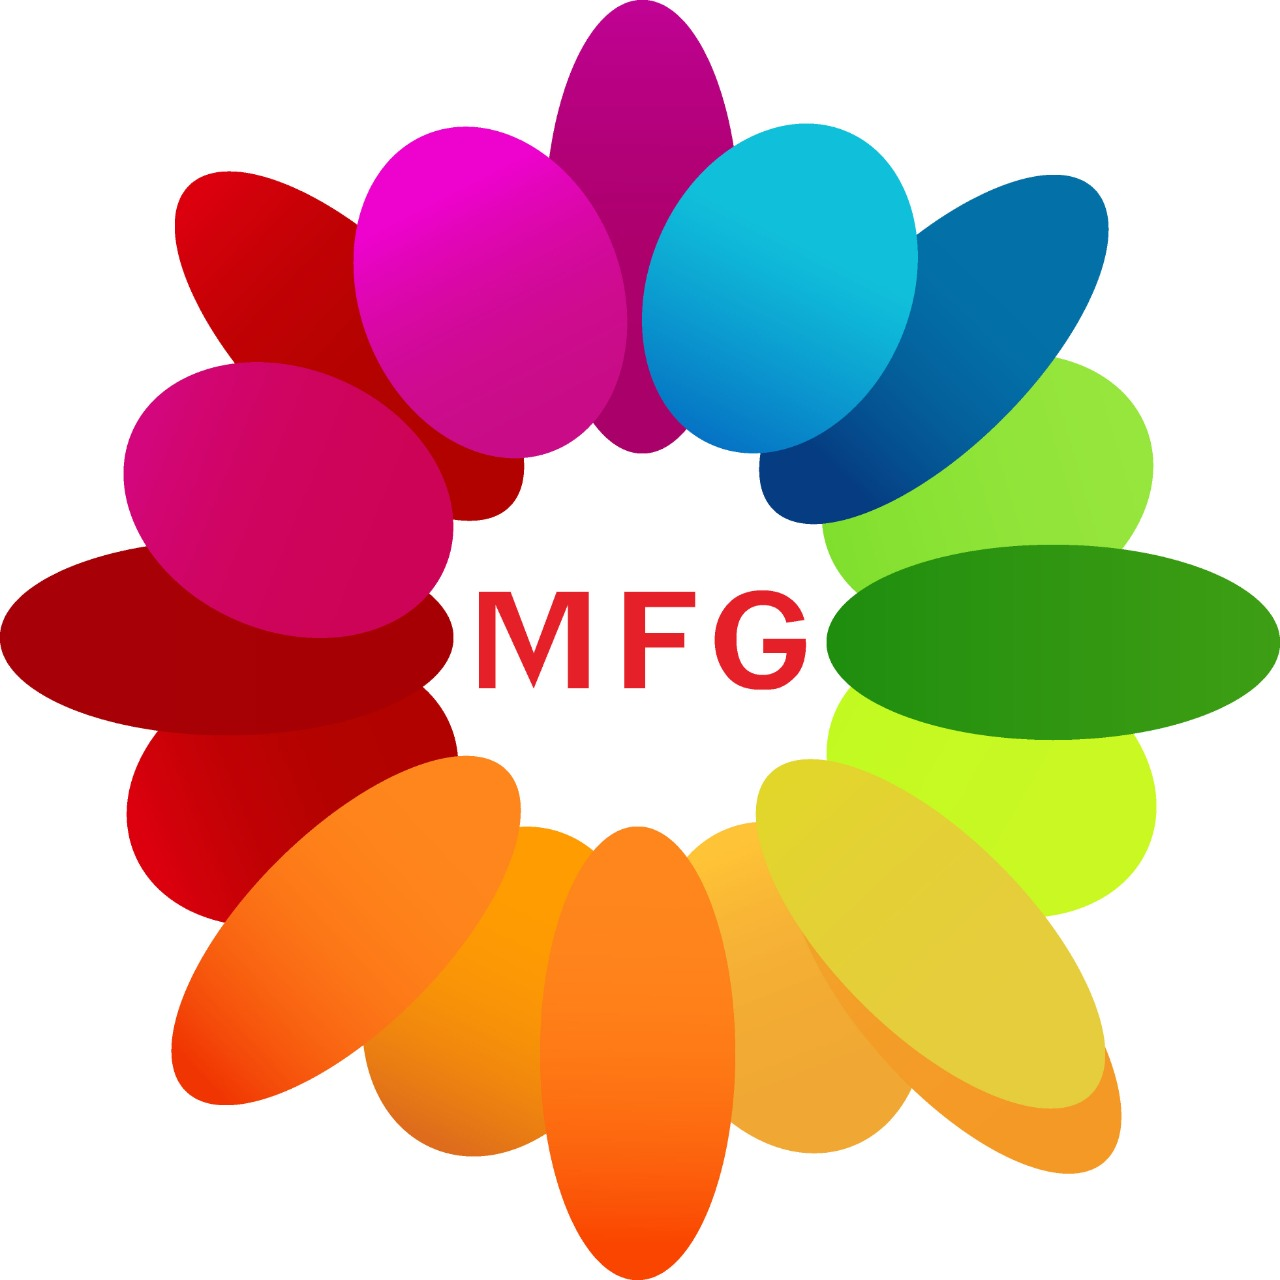 20 Red Roses bunch wit 6 inch Teddy